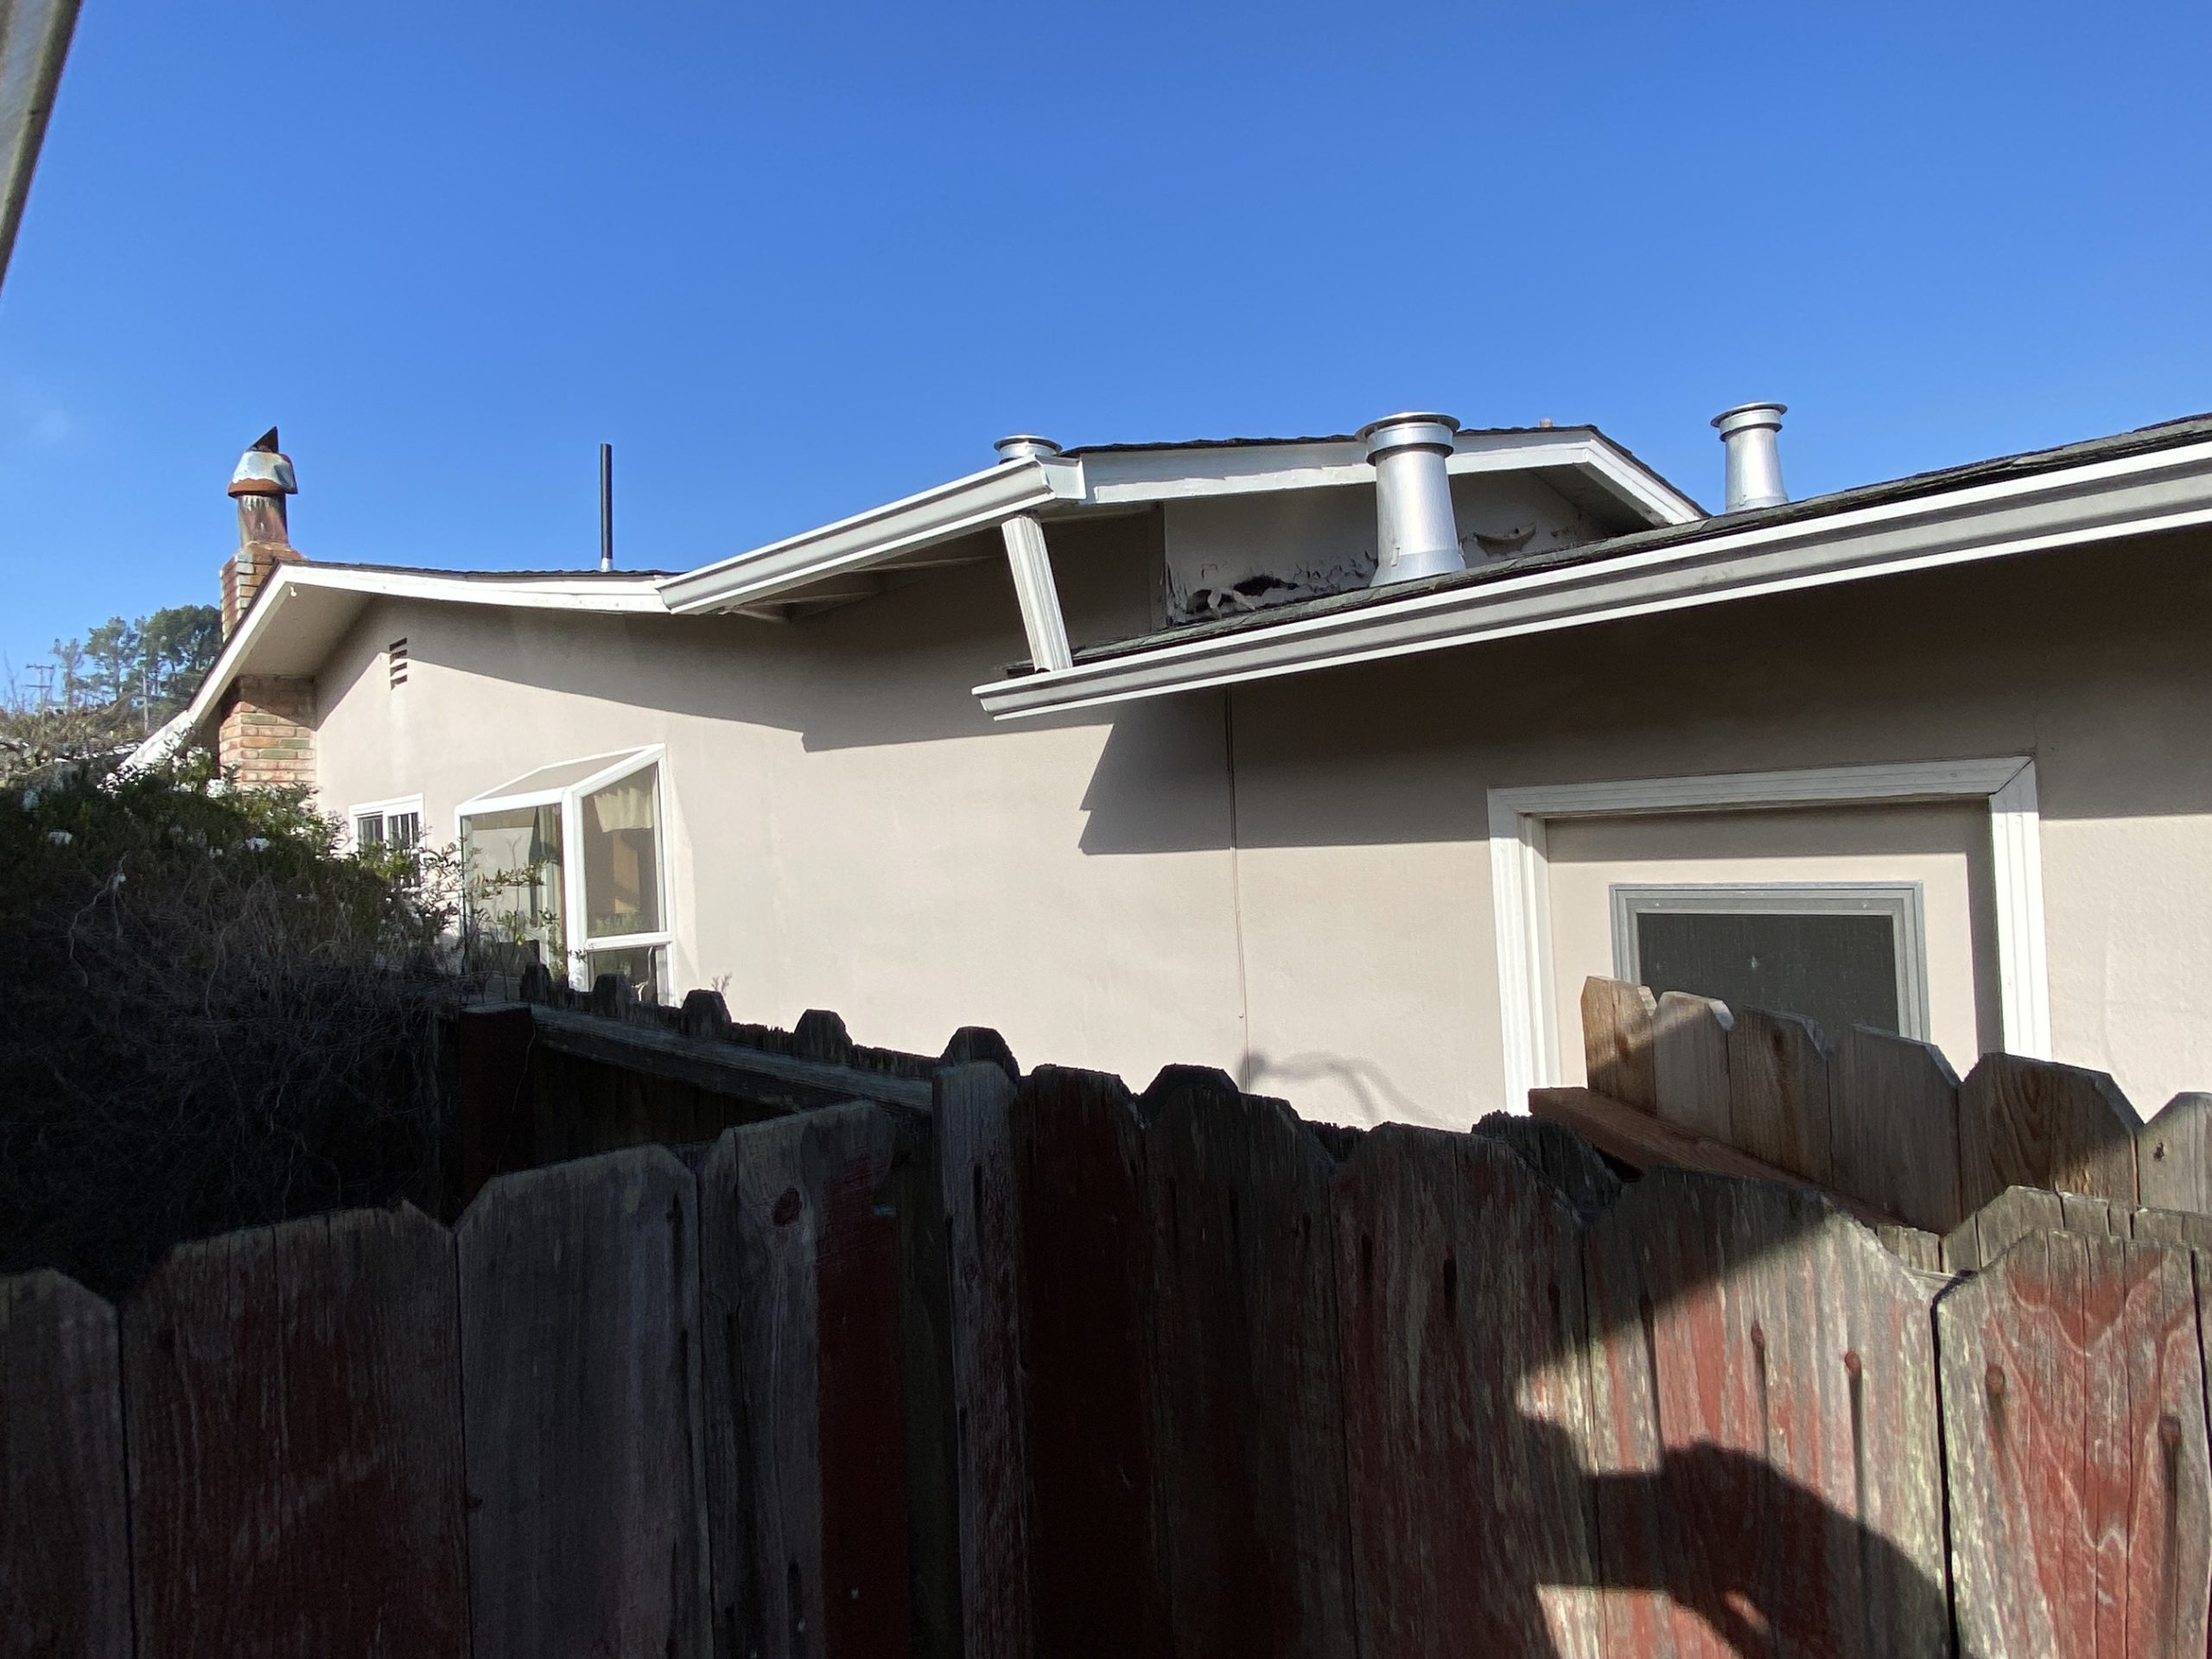 Side of house blocked by fence